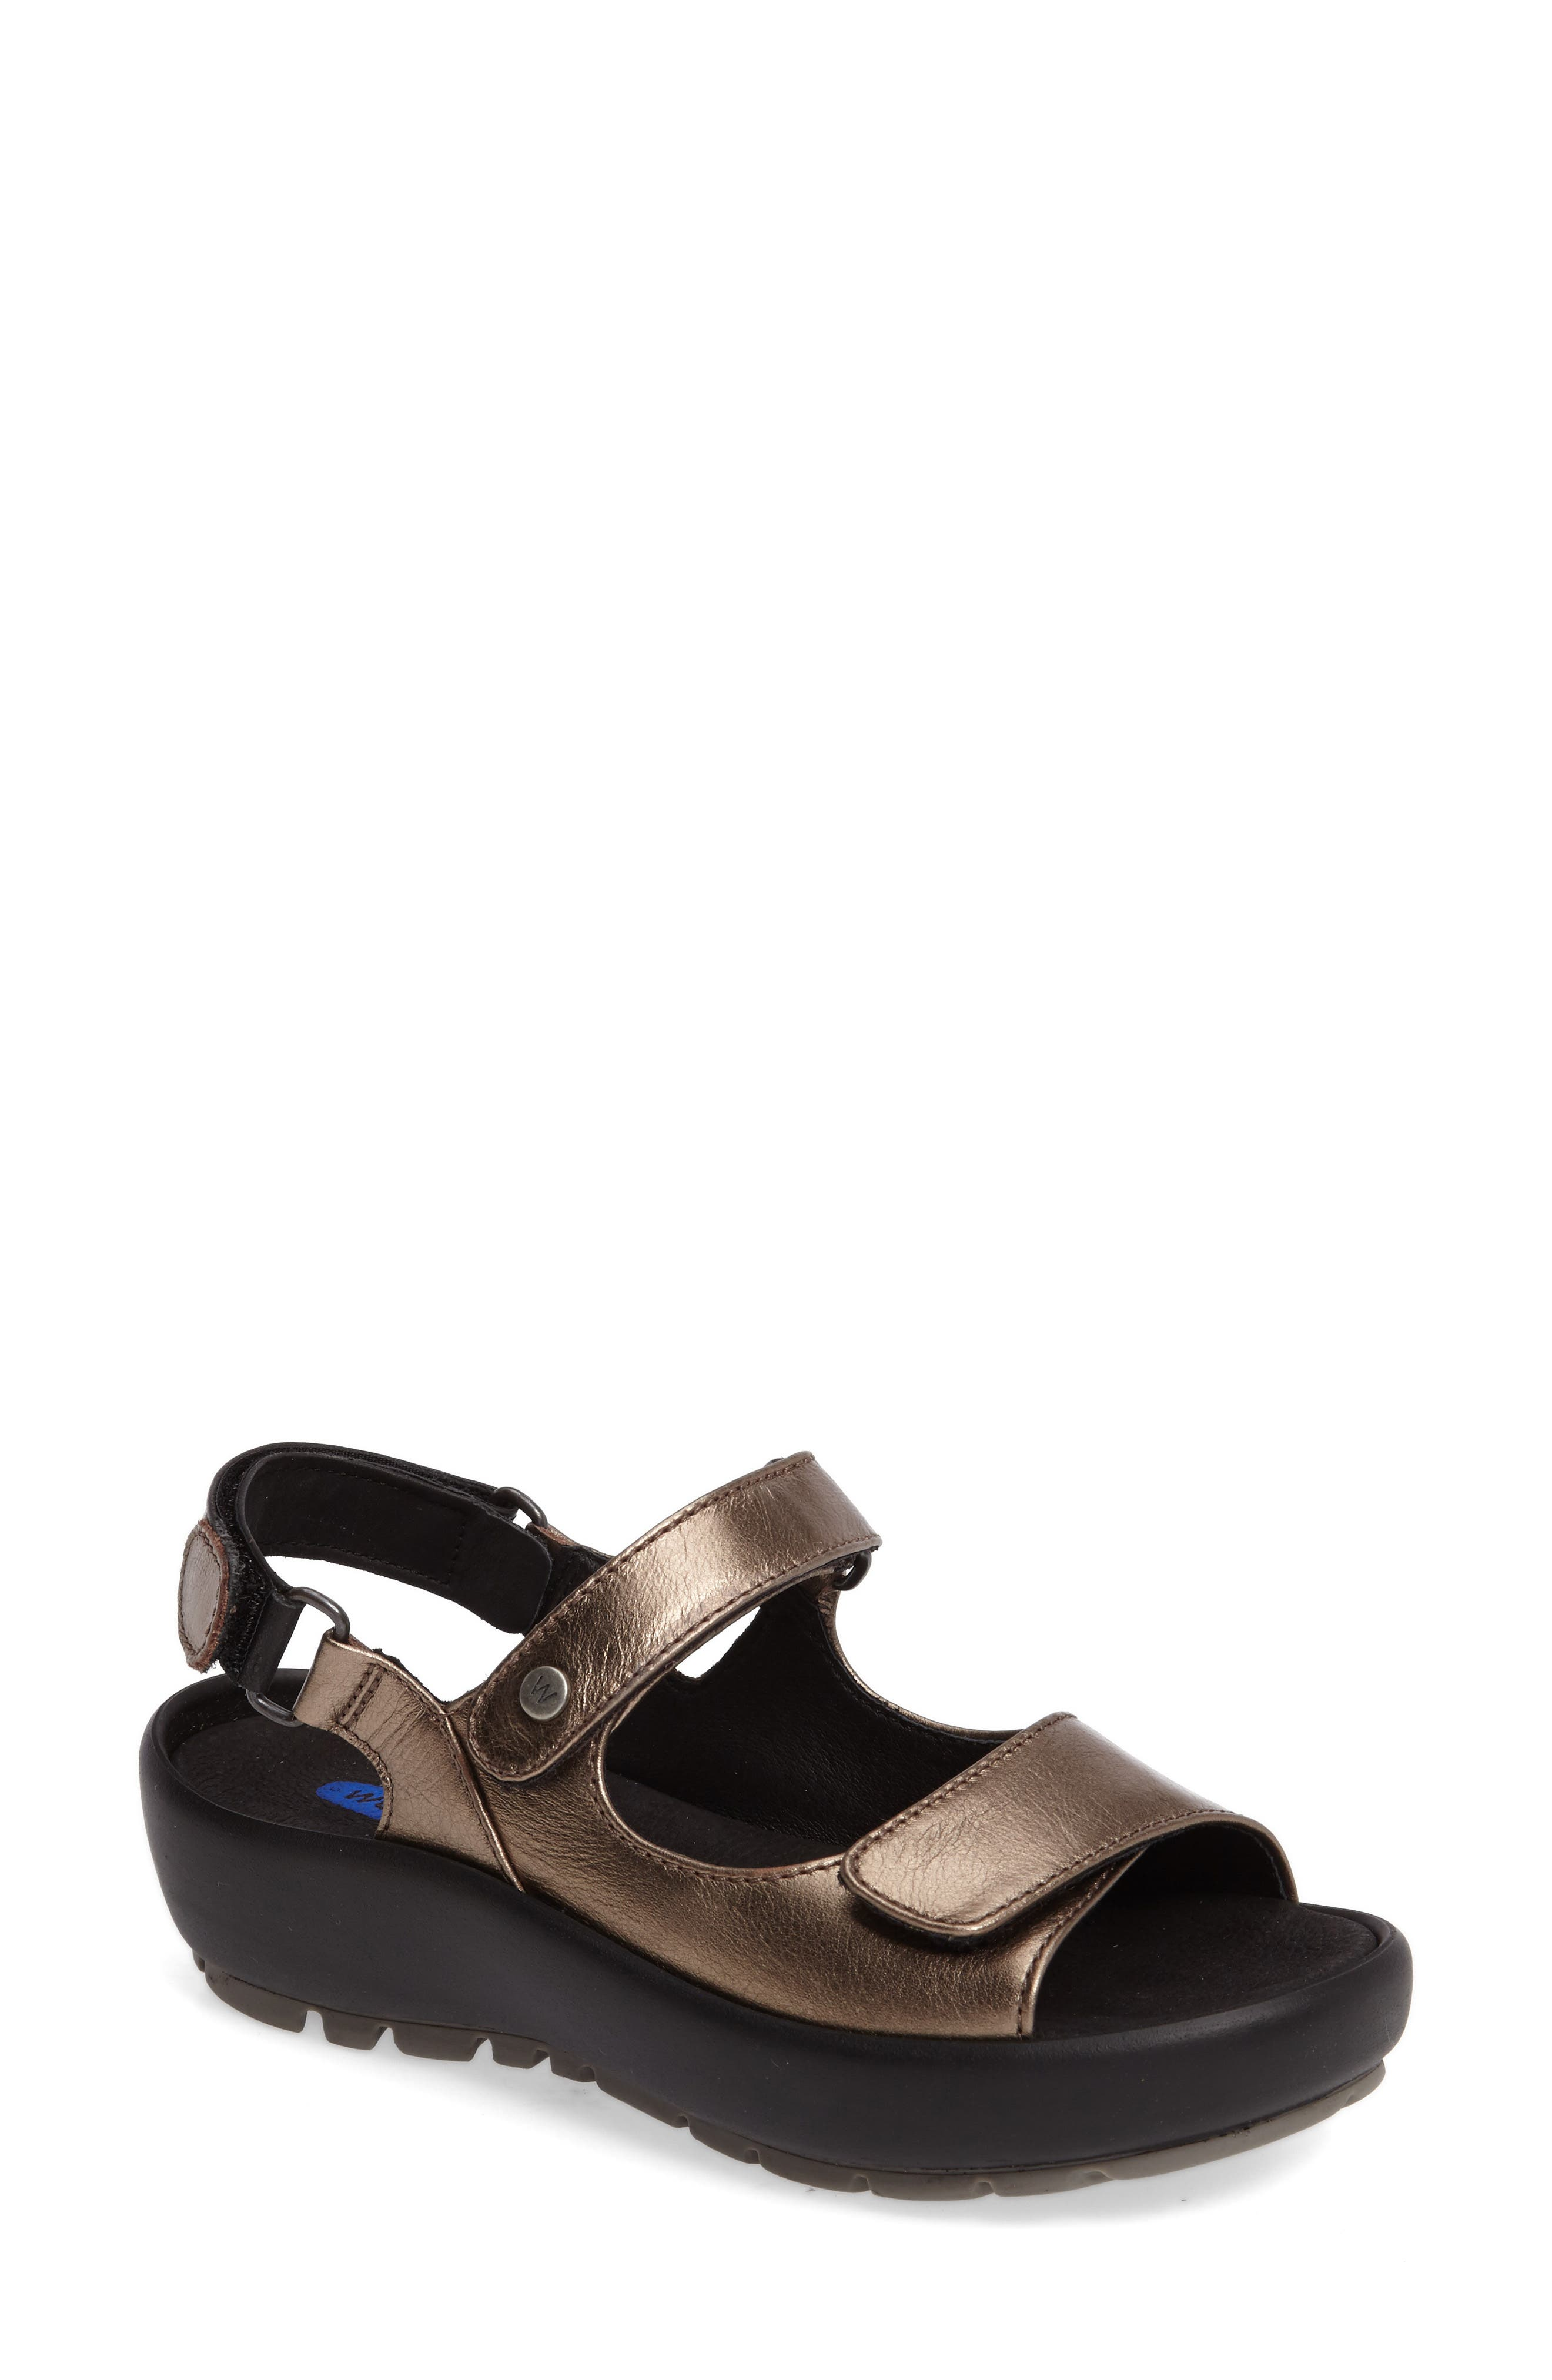 Rio Sandal,                         Main,                         color, Bronze Metallic Leather